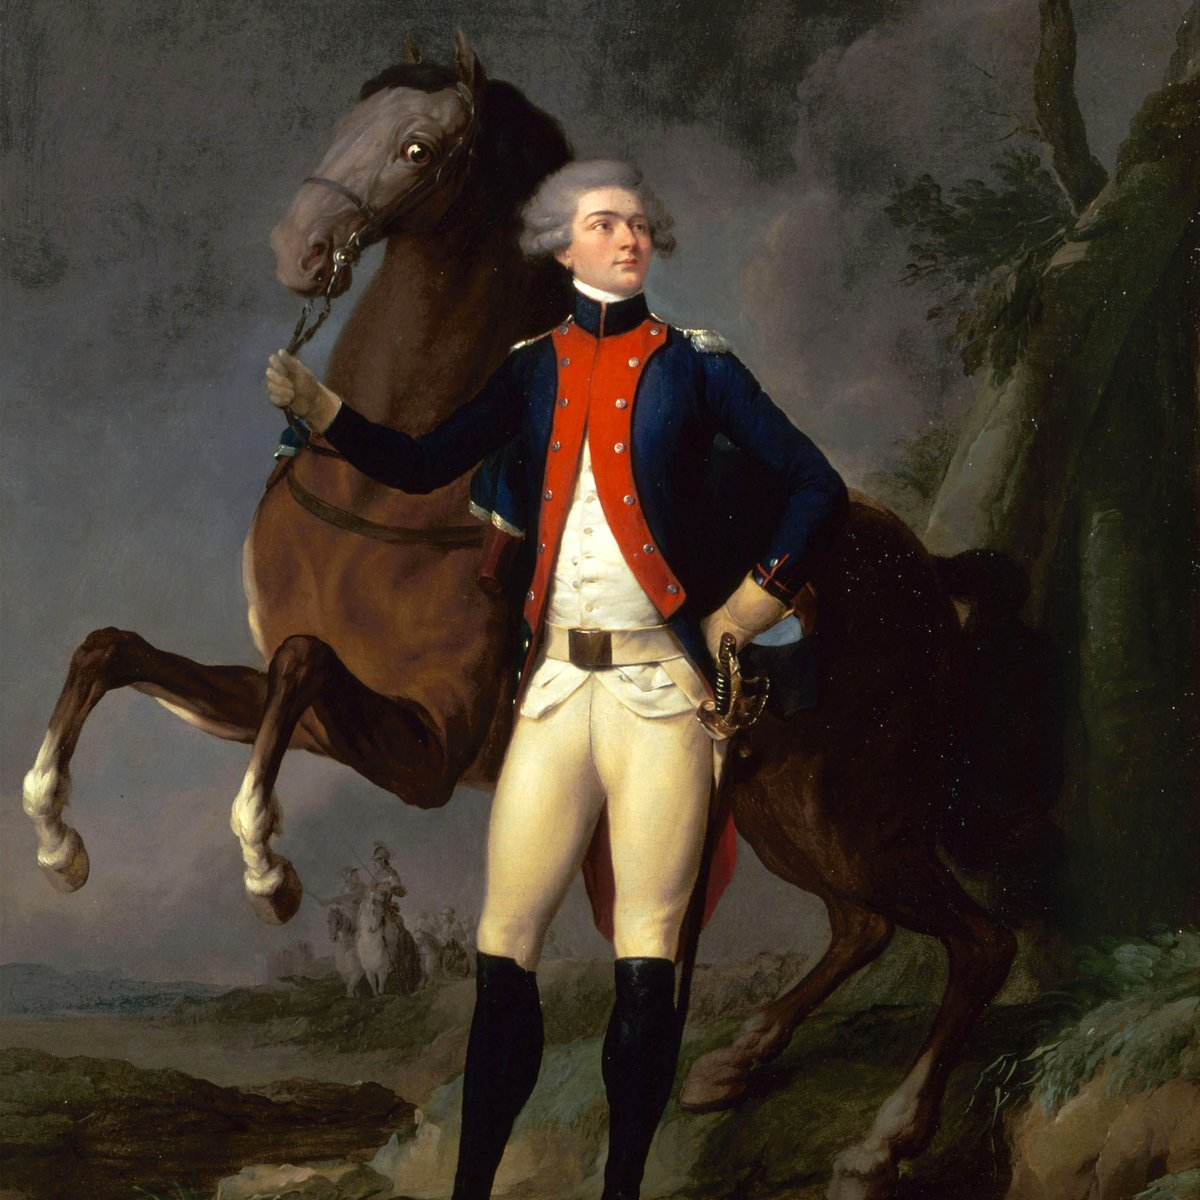 Long before hitting the road for @HamiltonMusical's US tour, in 1824 the real Marquis de #Lafayette set out on a 24-state tour honoring his heroic feats during the American Revolution! He received many honors and monuments...and maybe signed a few autographs. #OldestAllies